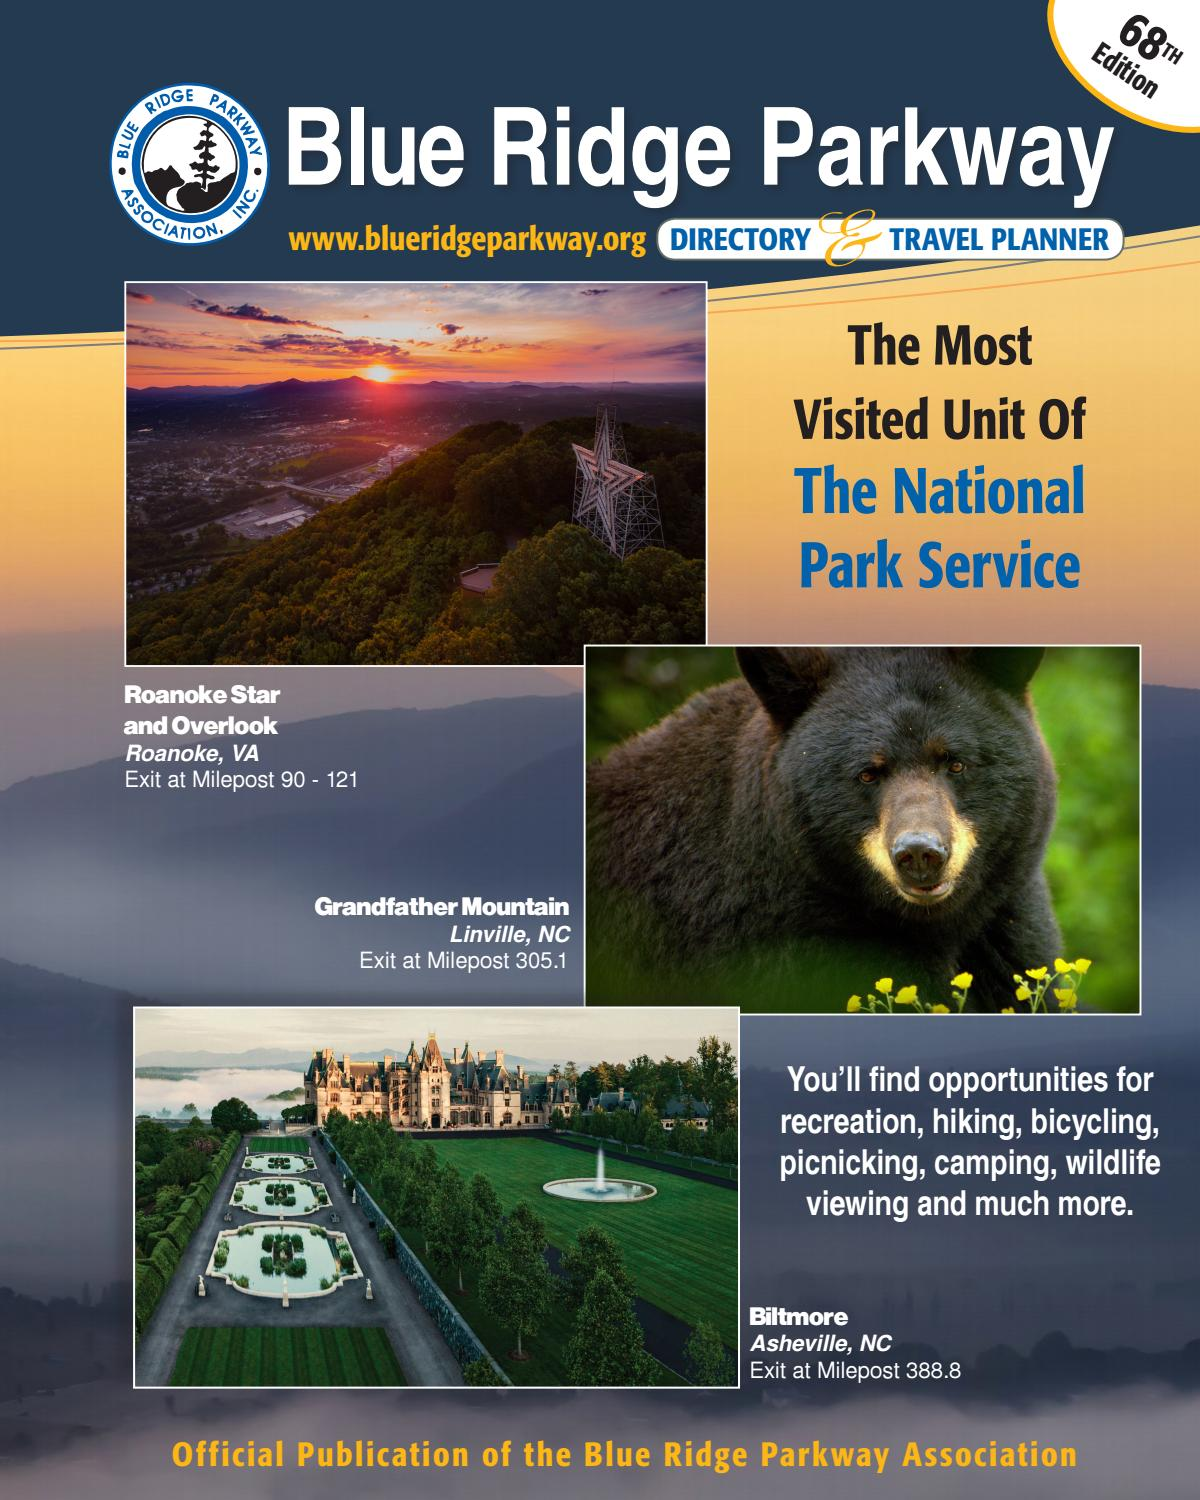 Blue Ridge Parkway Directory Travel Planner